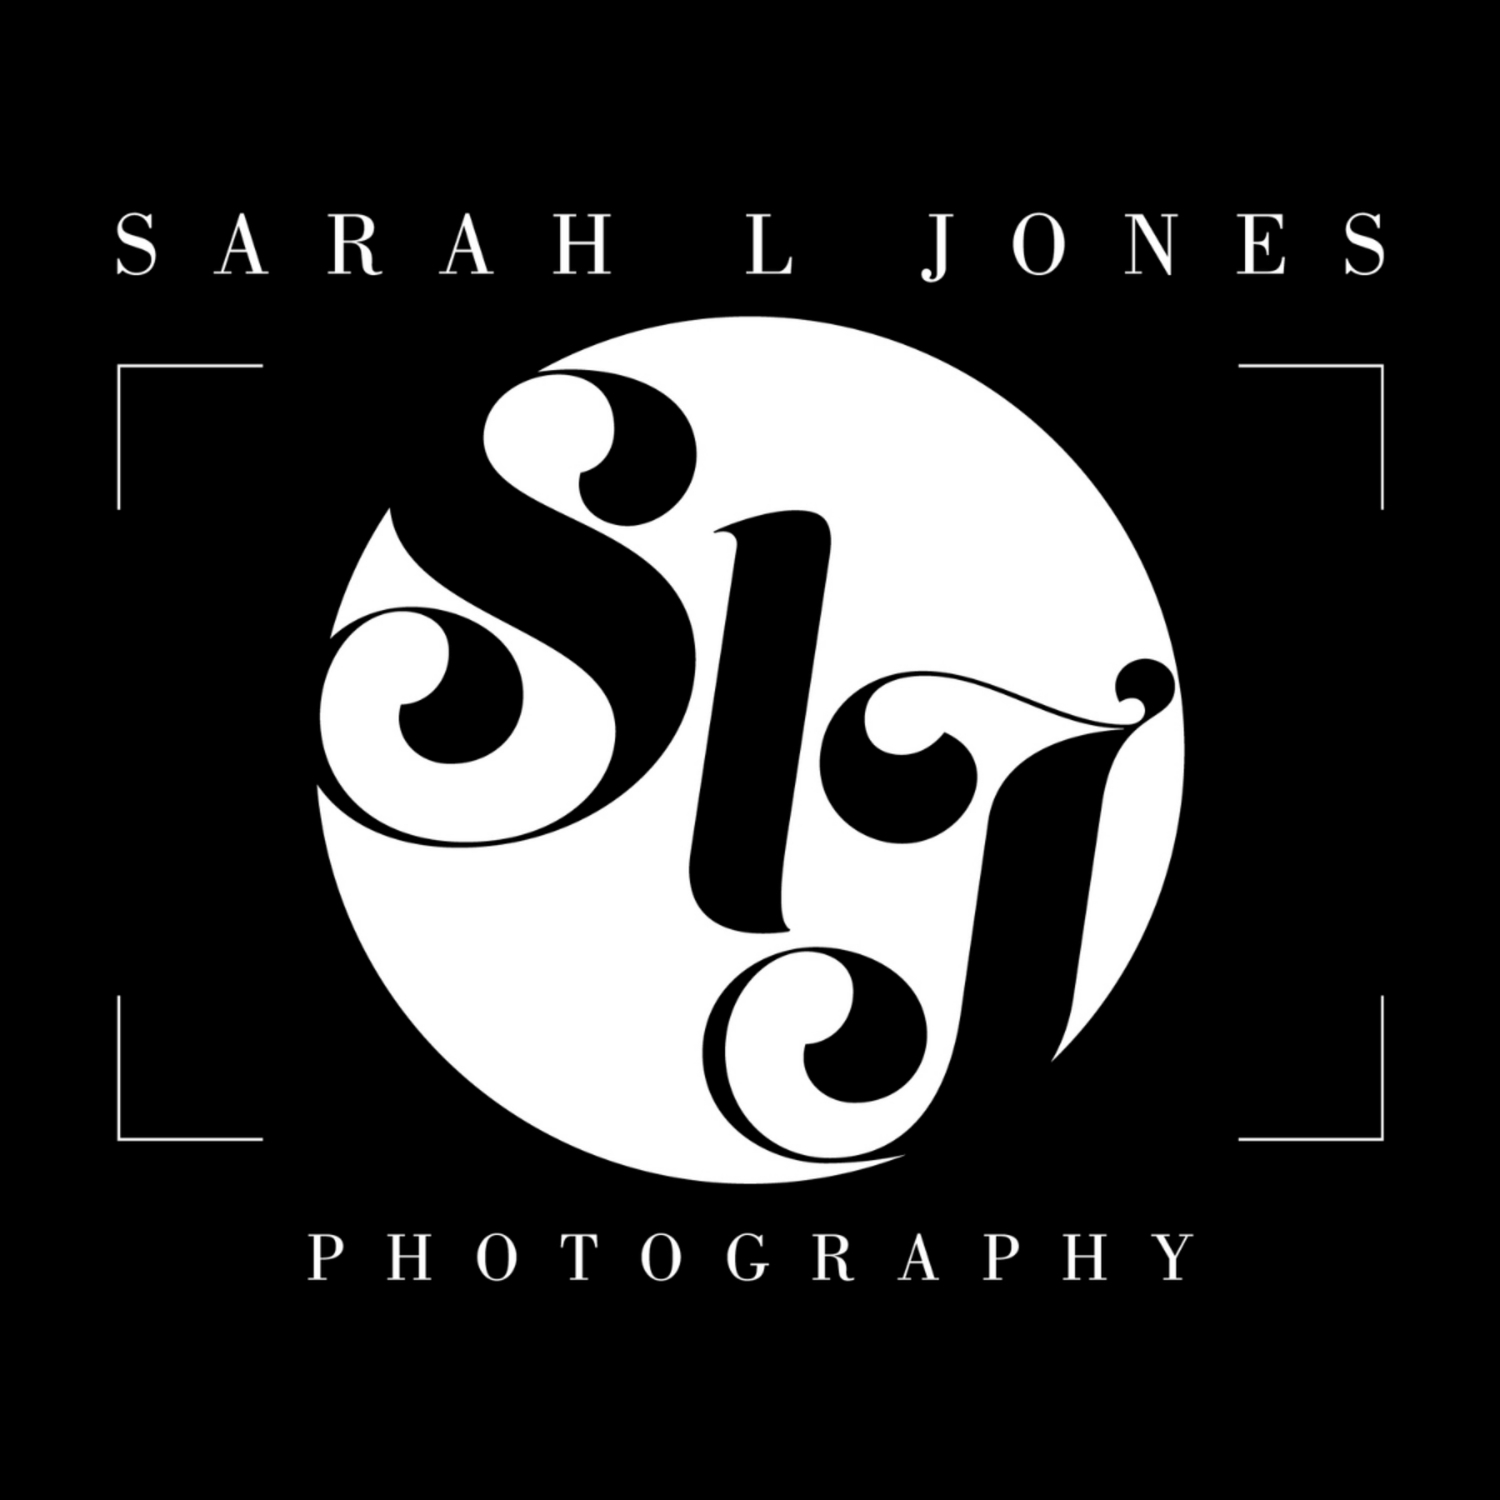 Sarah L Jones Photography